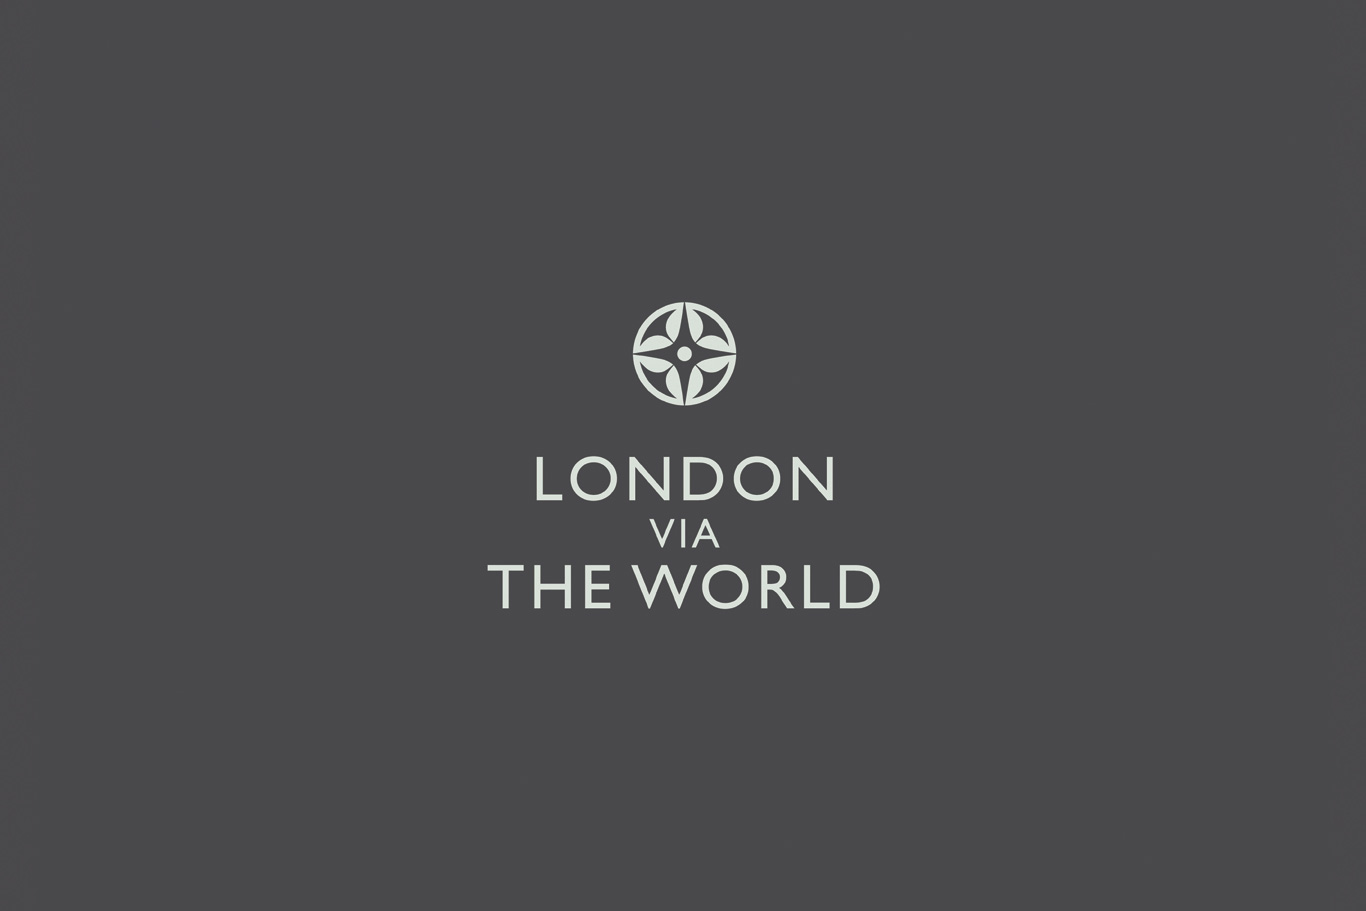 London via the world - Molton Brown's brand, summed up in four words.